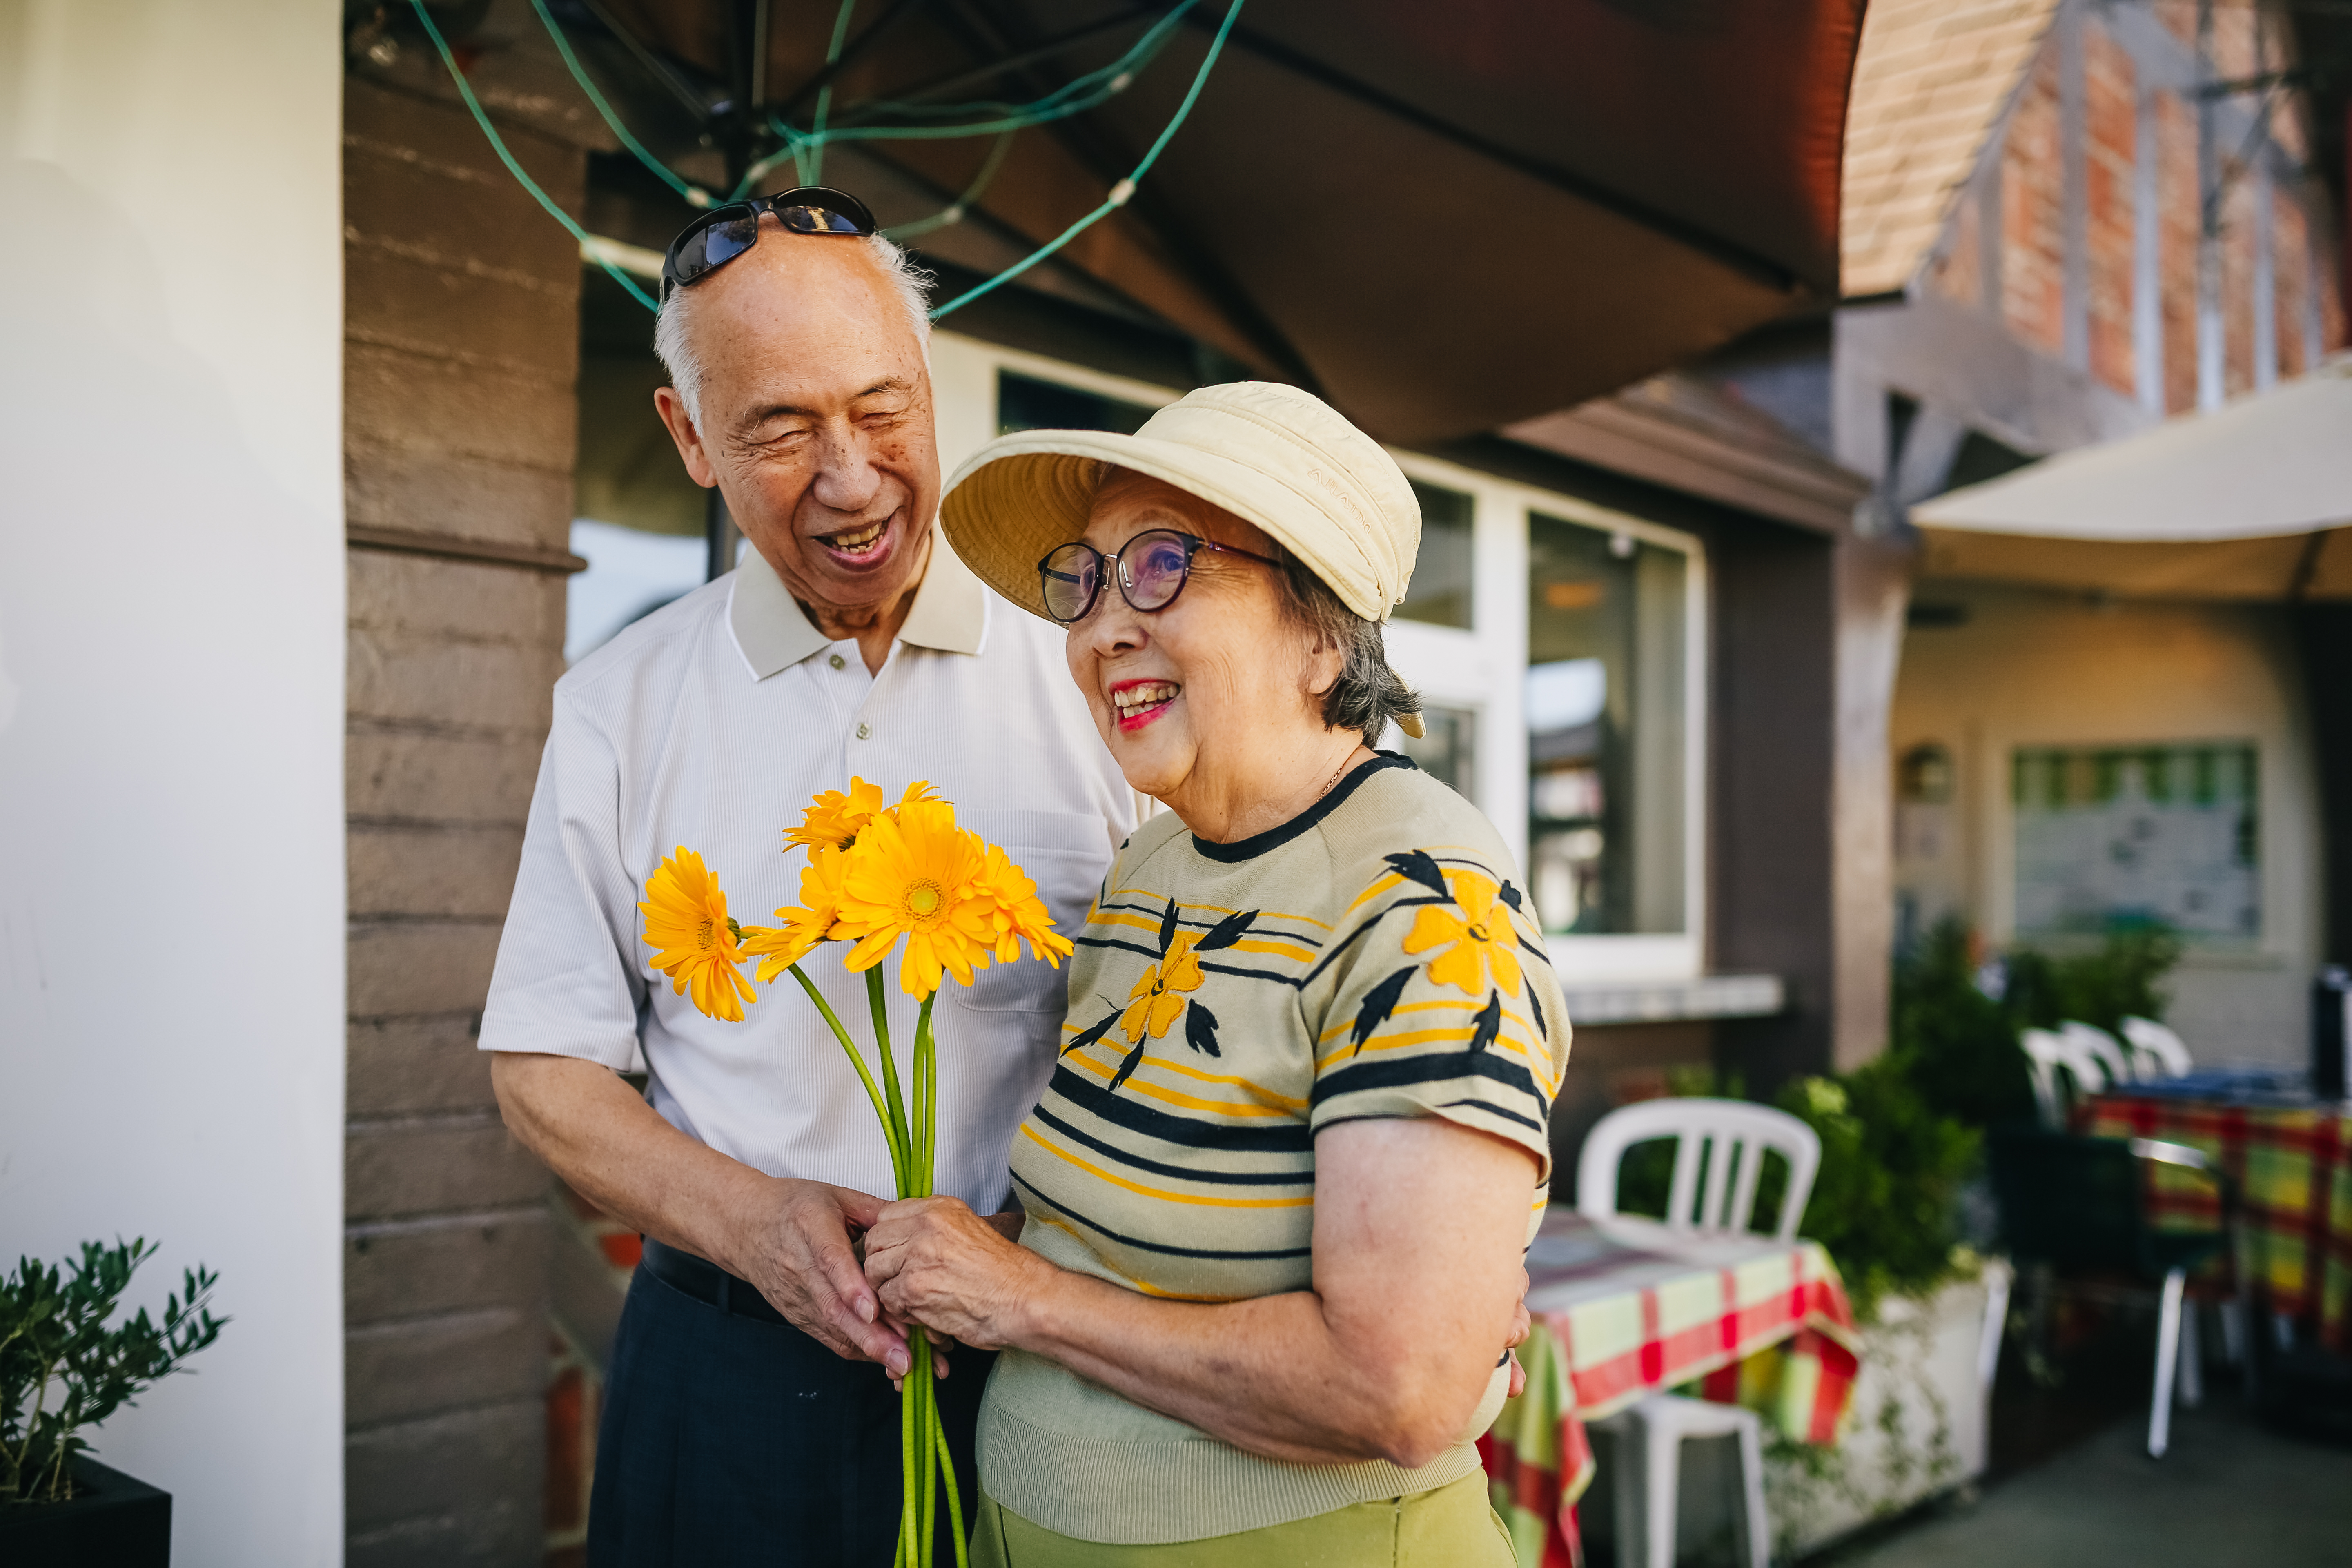 Dating Tips for Older People during Covid